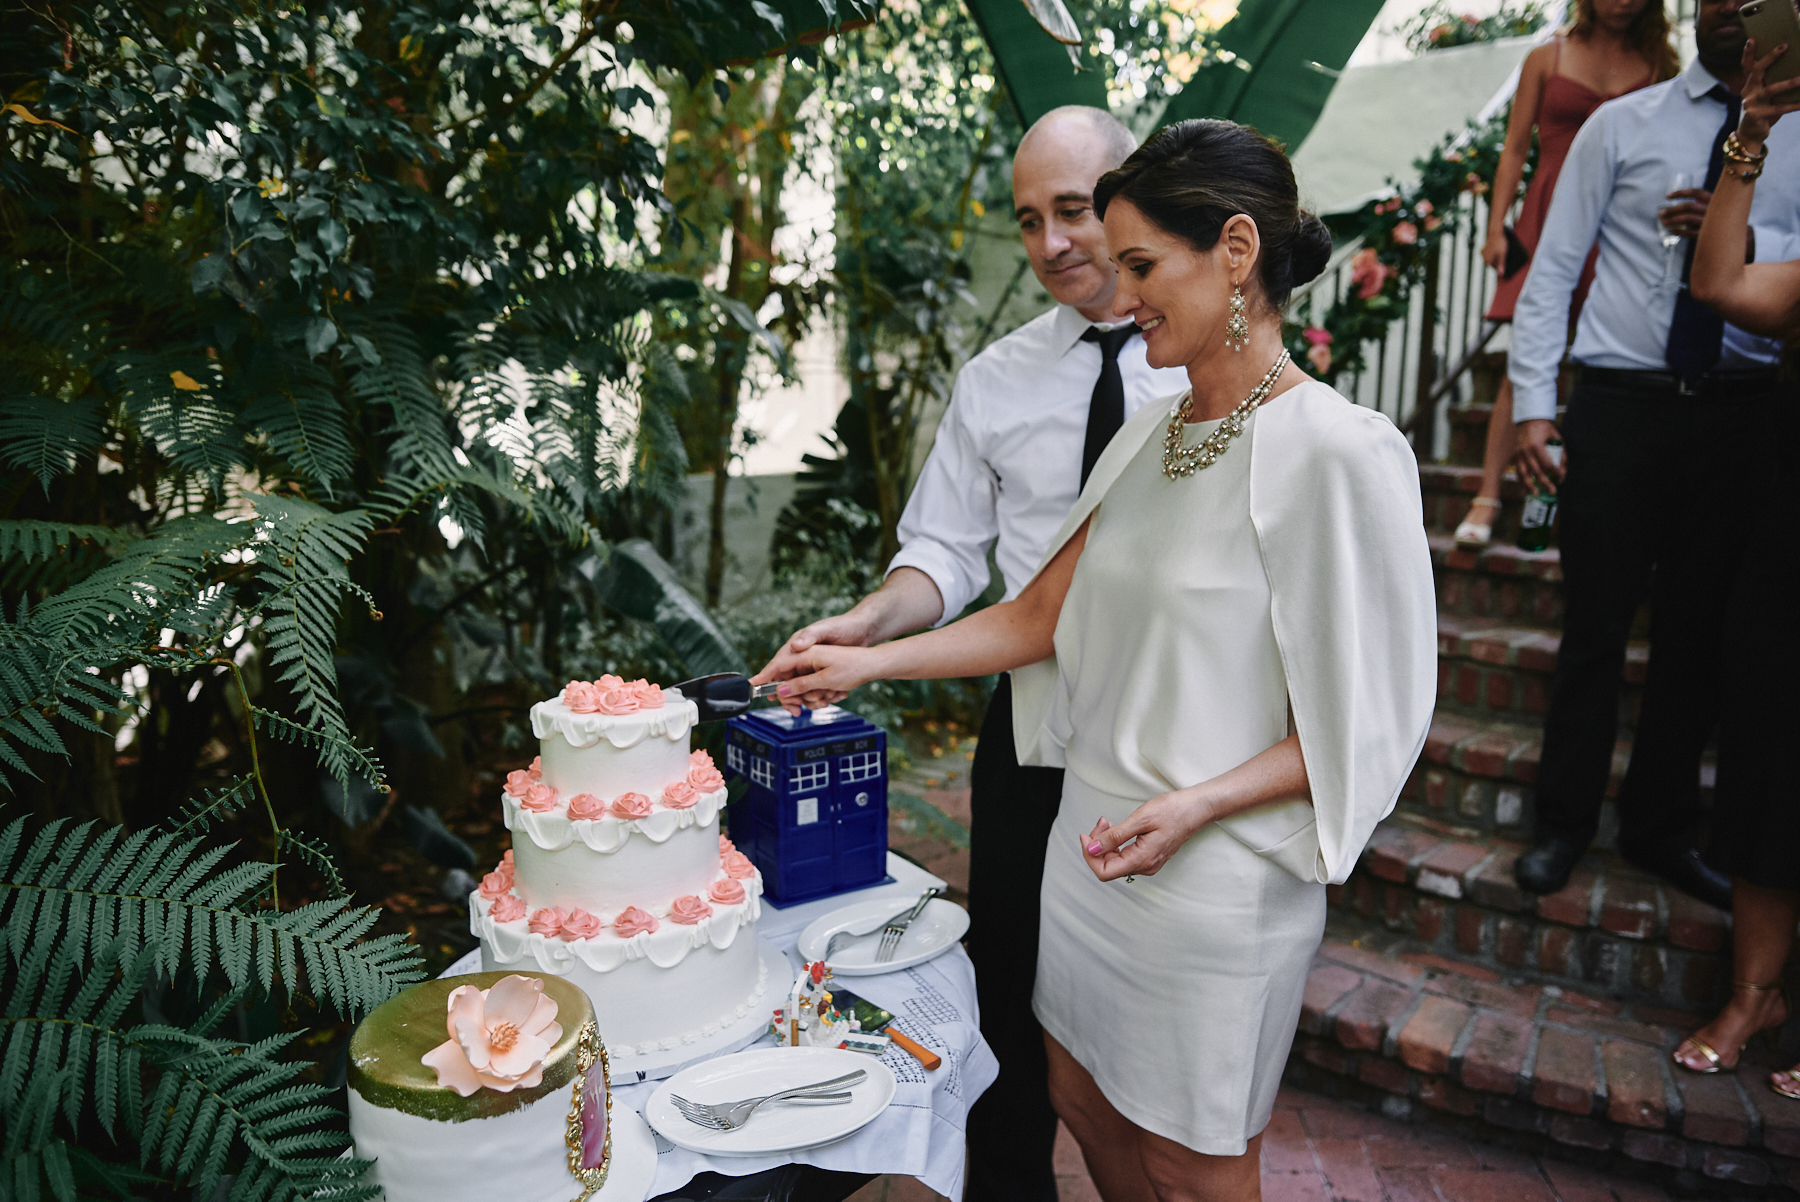 Sunset Marquis wedding cake cutting